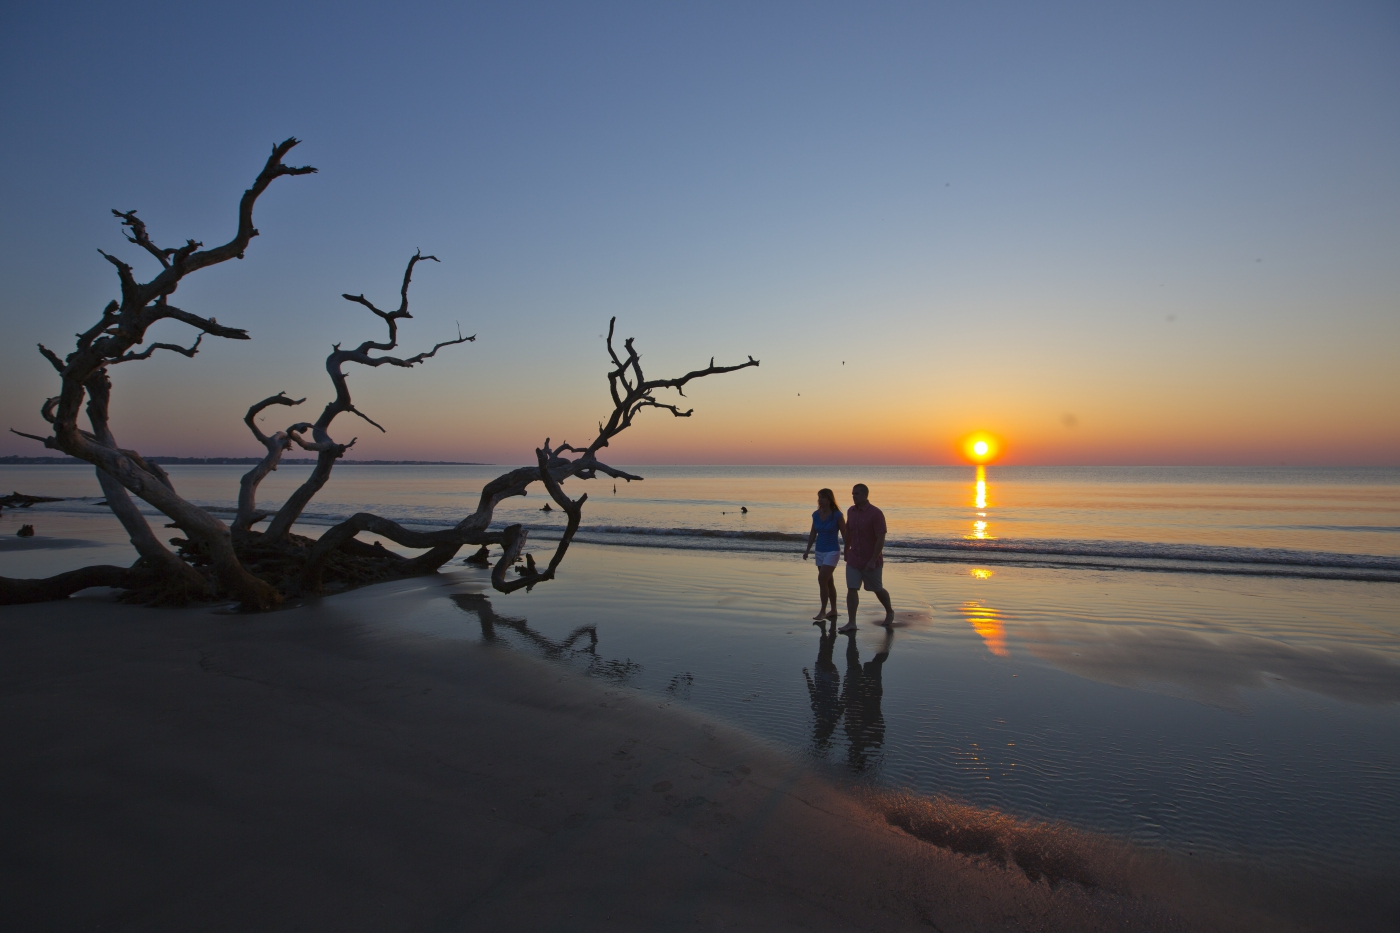 Take a tranquil stroll on Driftwood Beach on Jekyll Island, scattered with knobby and twisted tree trunks made gray by the sun and sea.